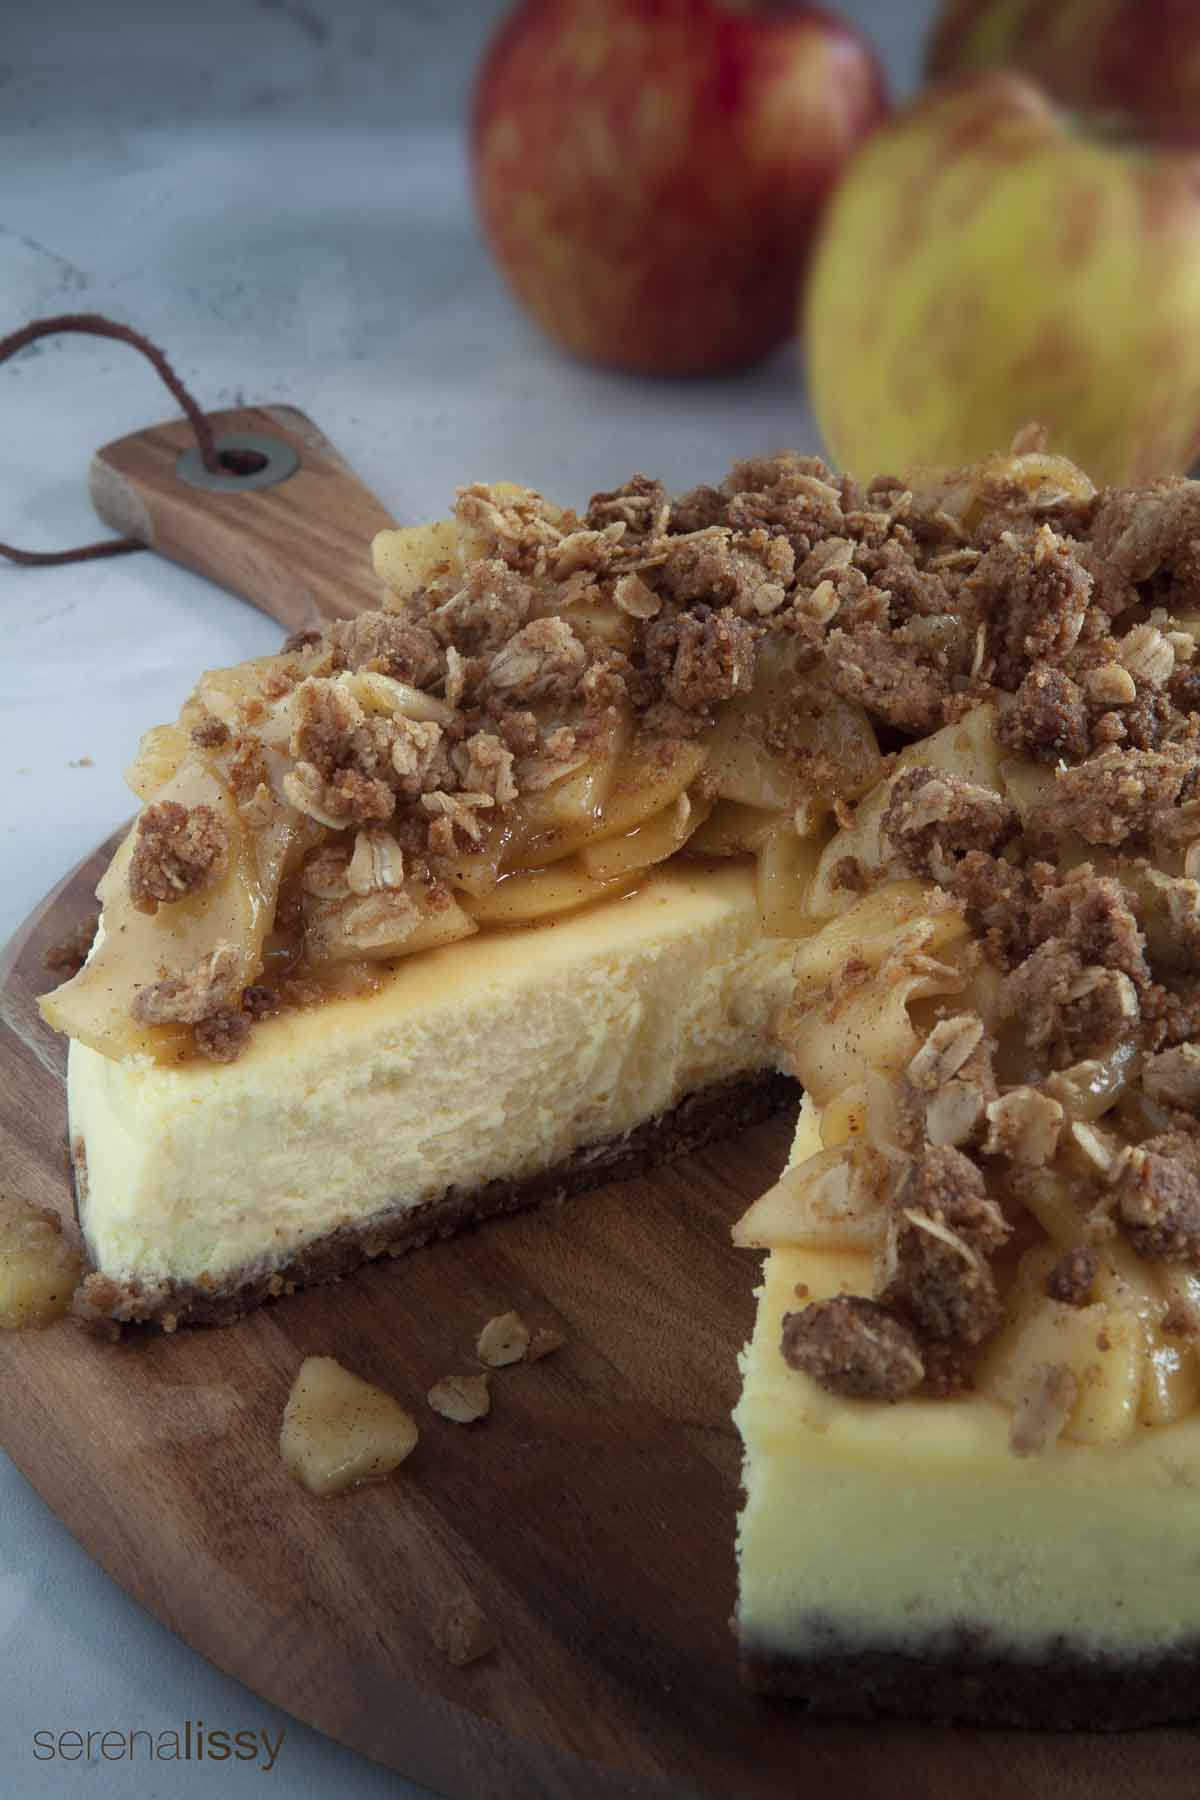 Apple Crumble Cheesecake on Serving Dish